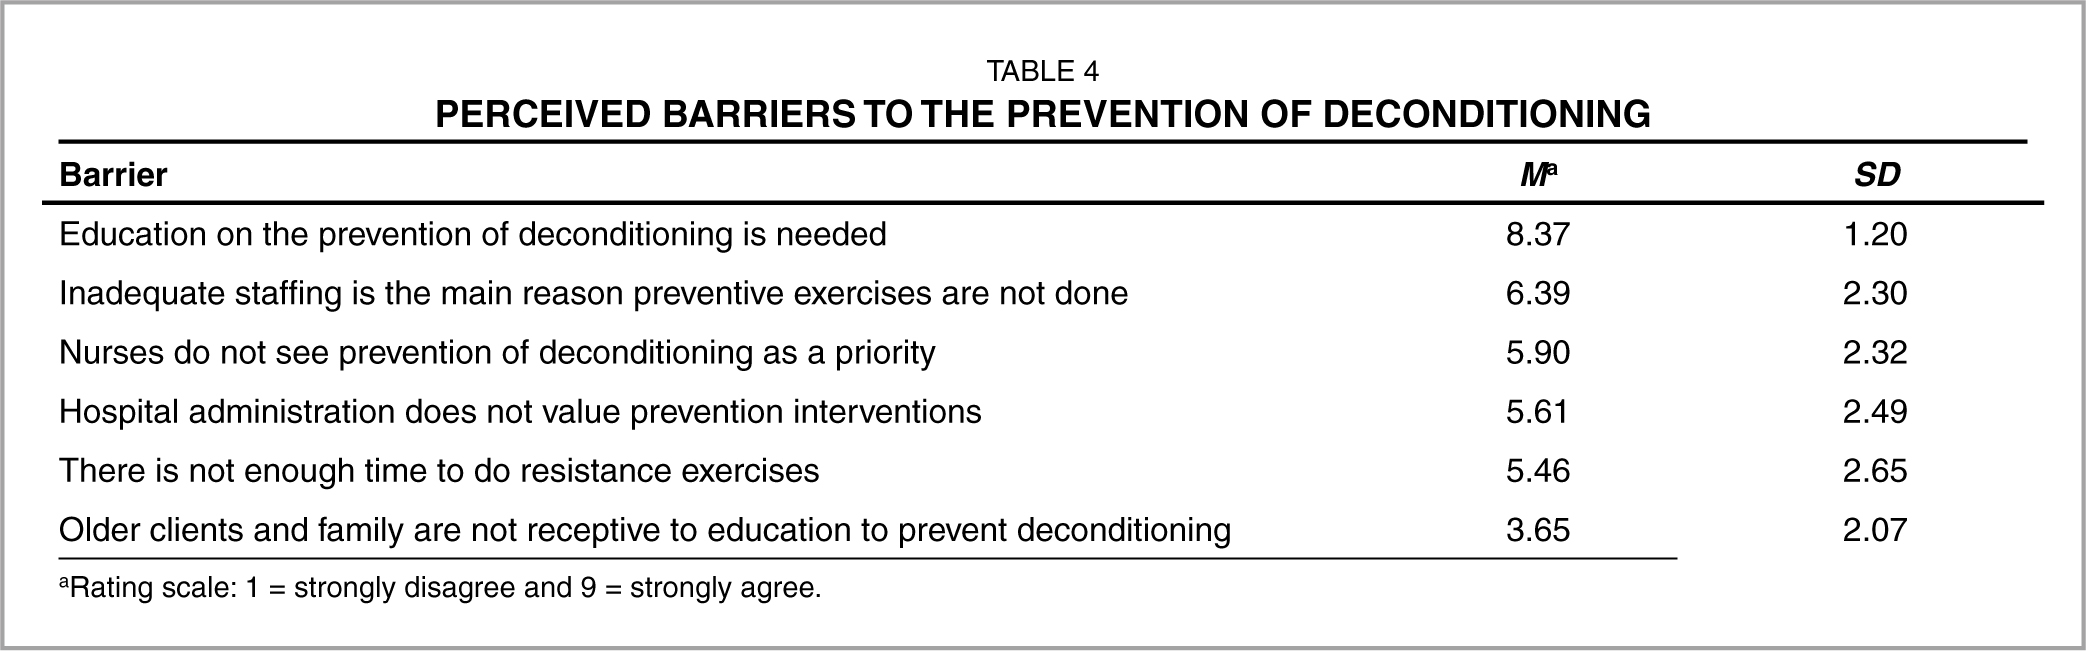 Perceived Barriers to the Prevention of Deconditioning